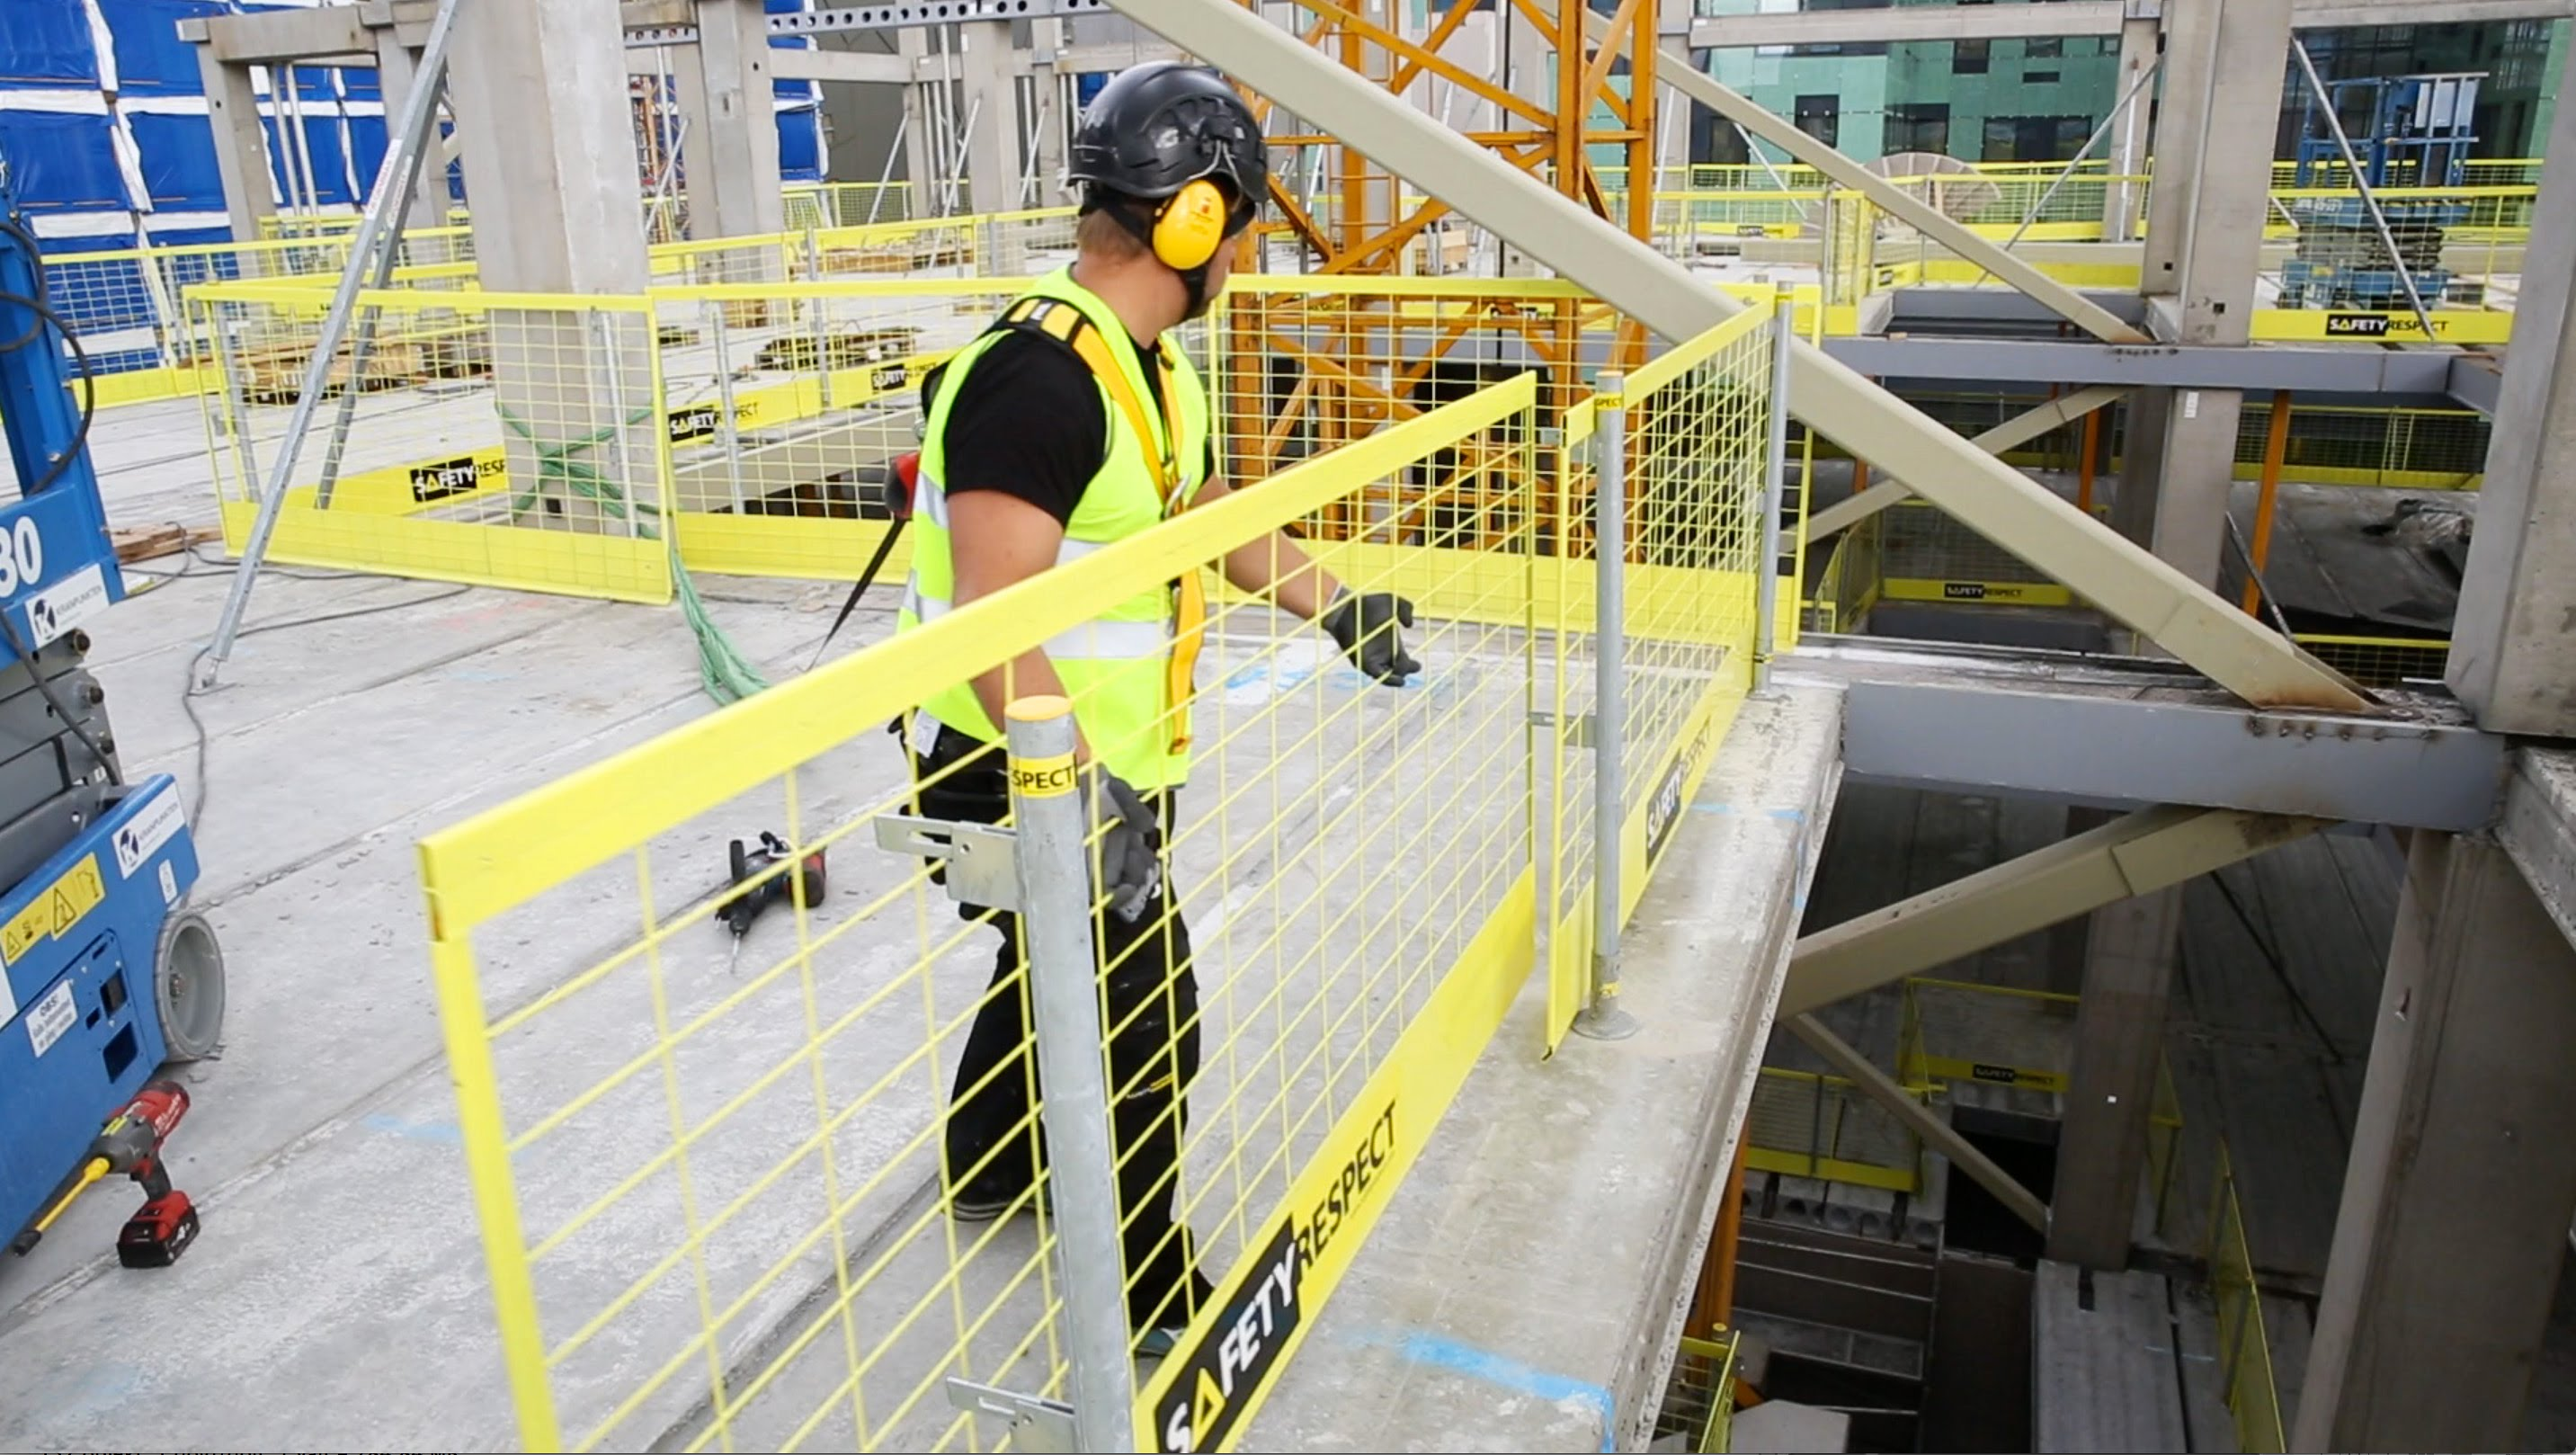 Choosing Right Company And Material For Temporary Site Protection